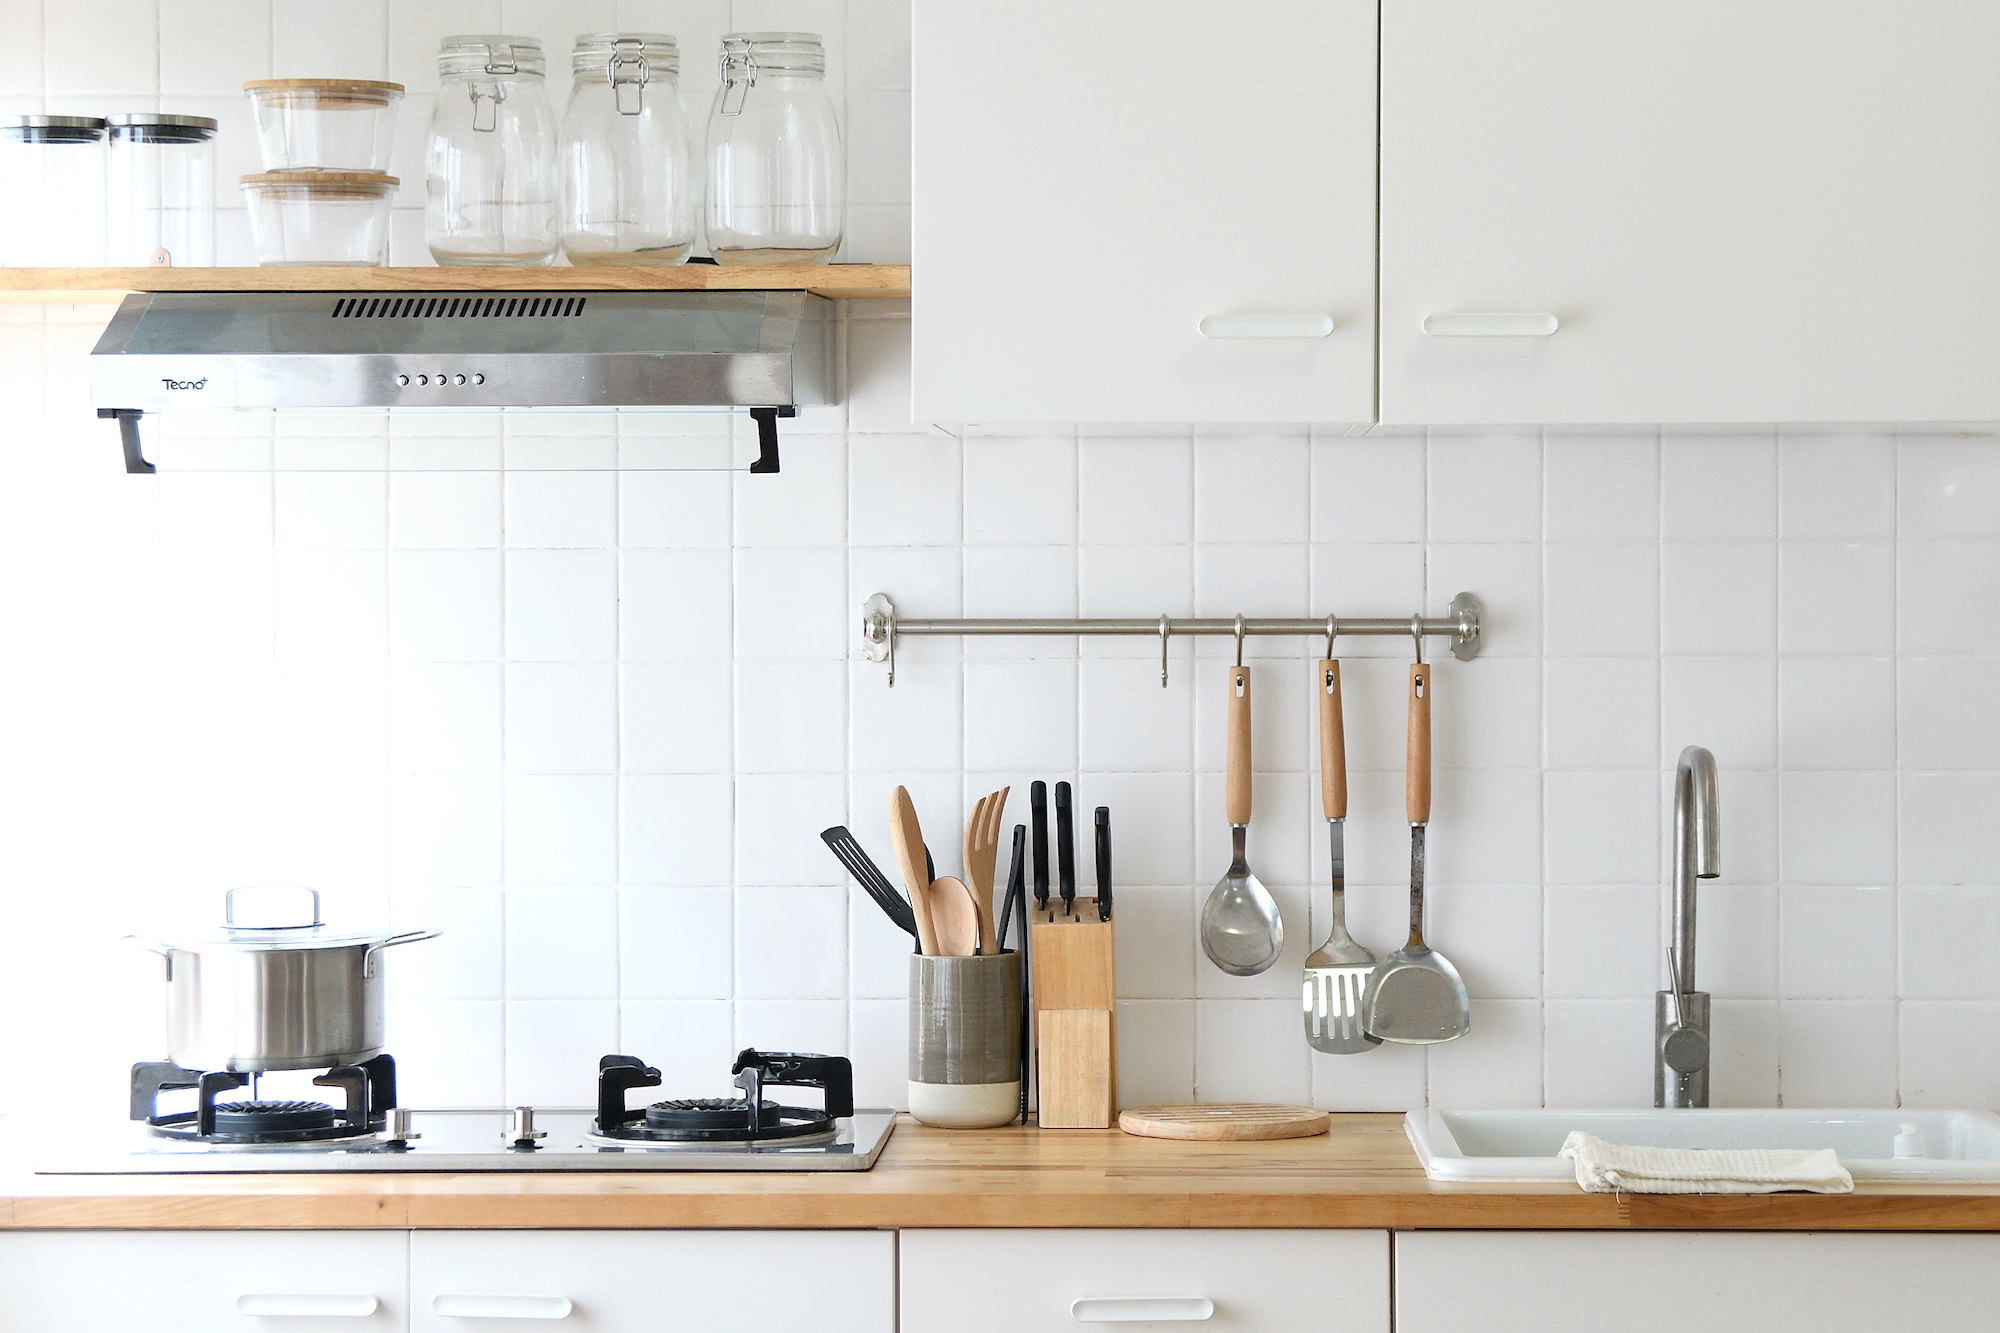 Kitchen with hanging storage and canisters